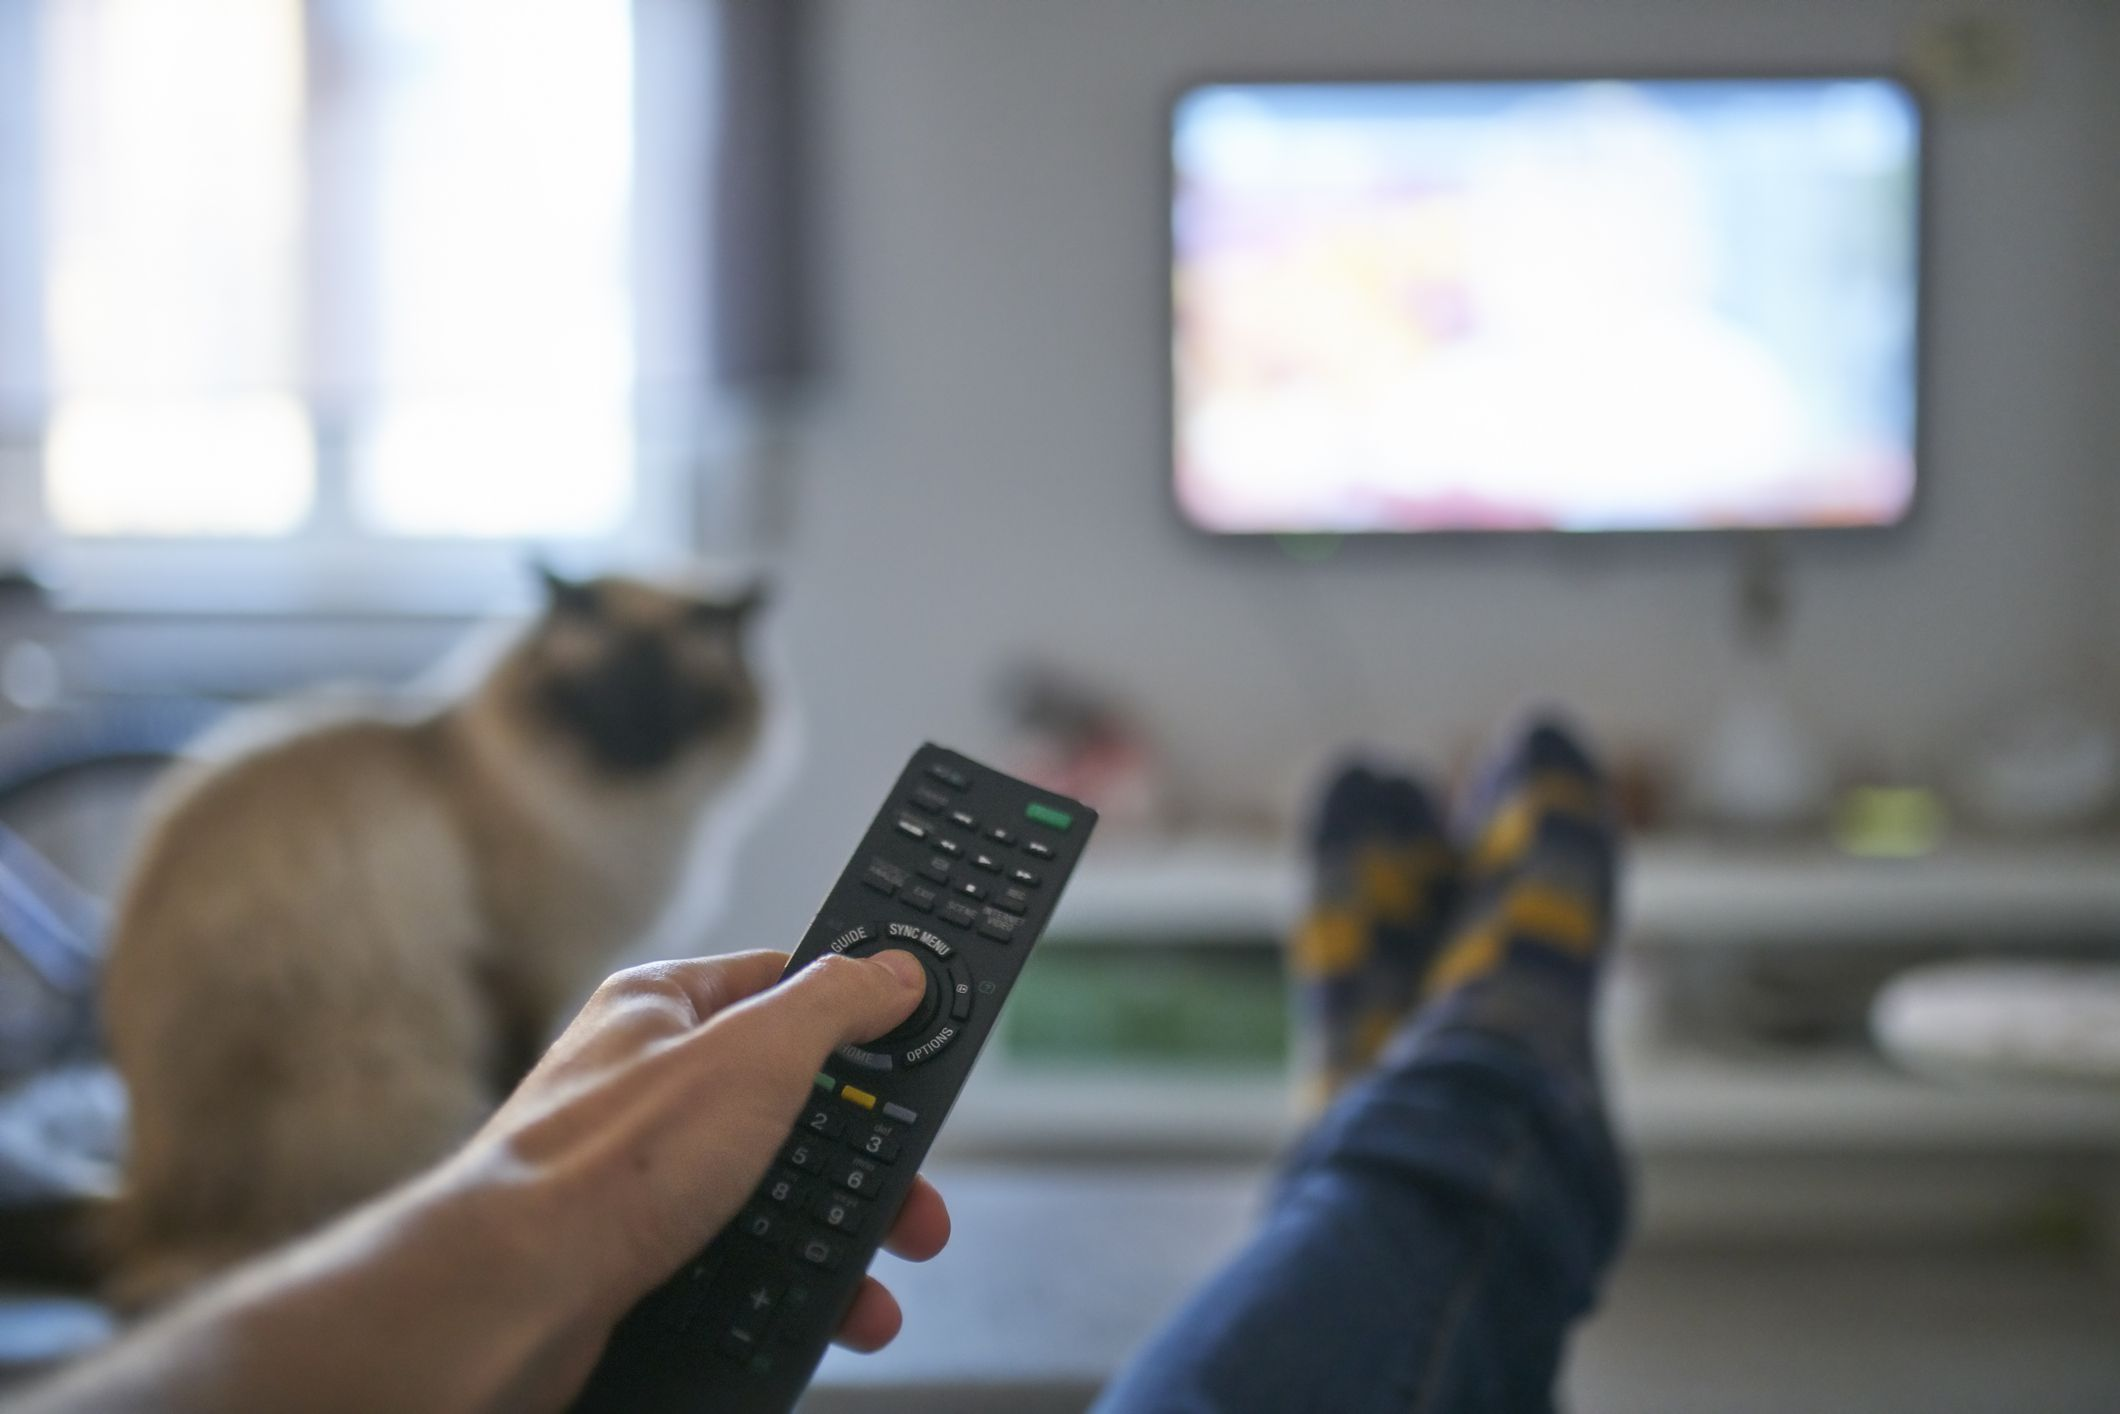 Someone pointing a remote at a television on the wall, with a cat in the background.